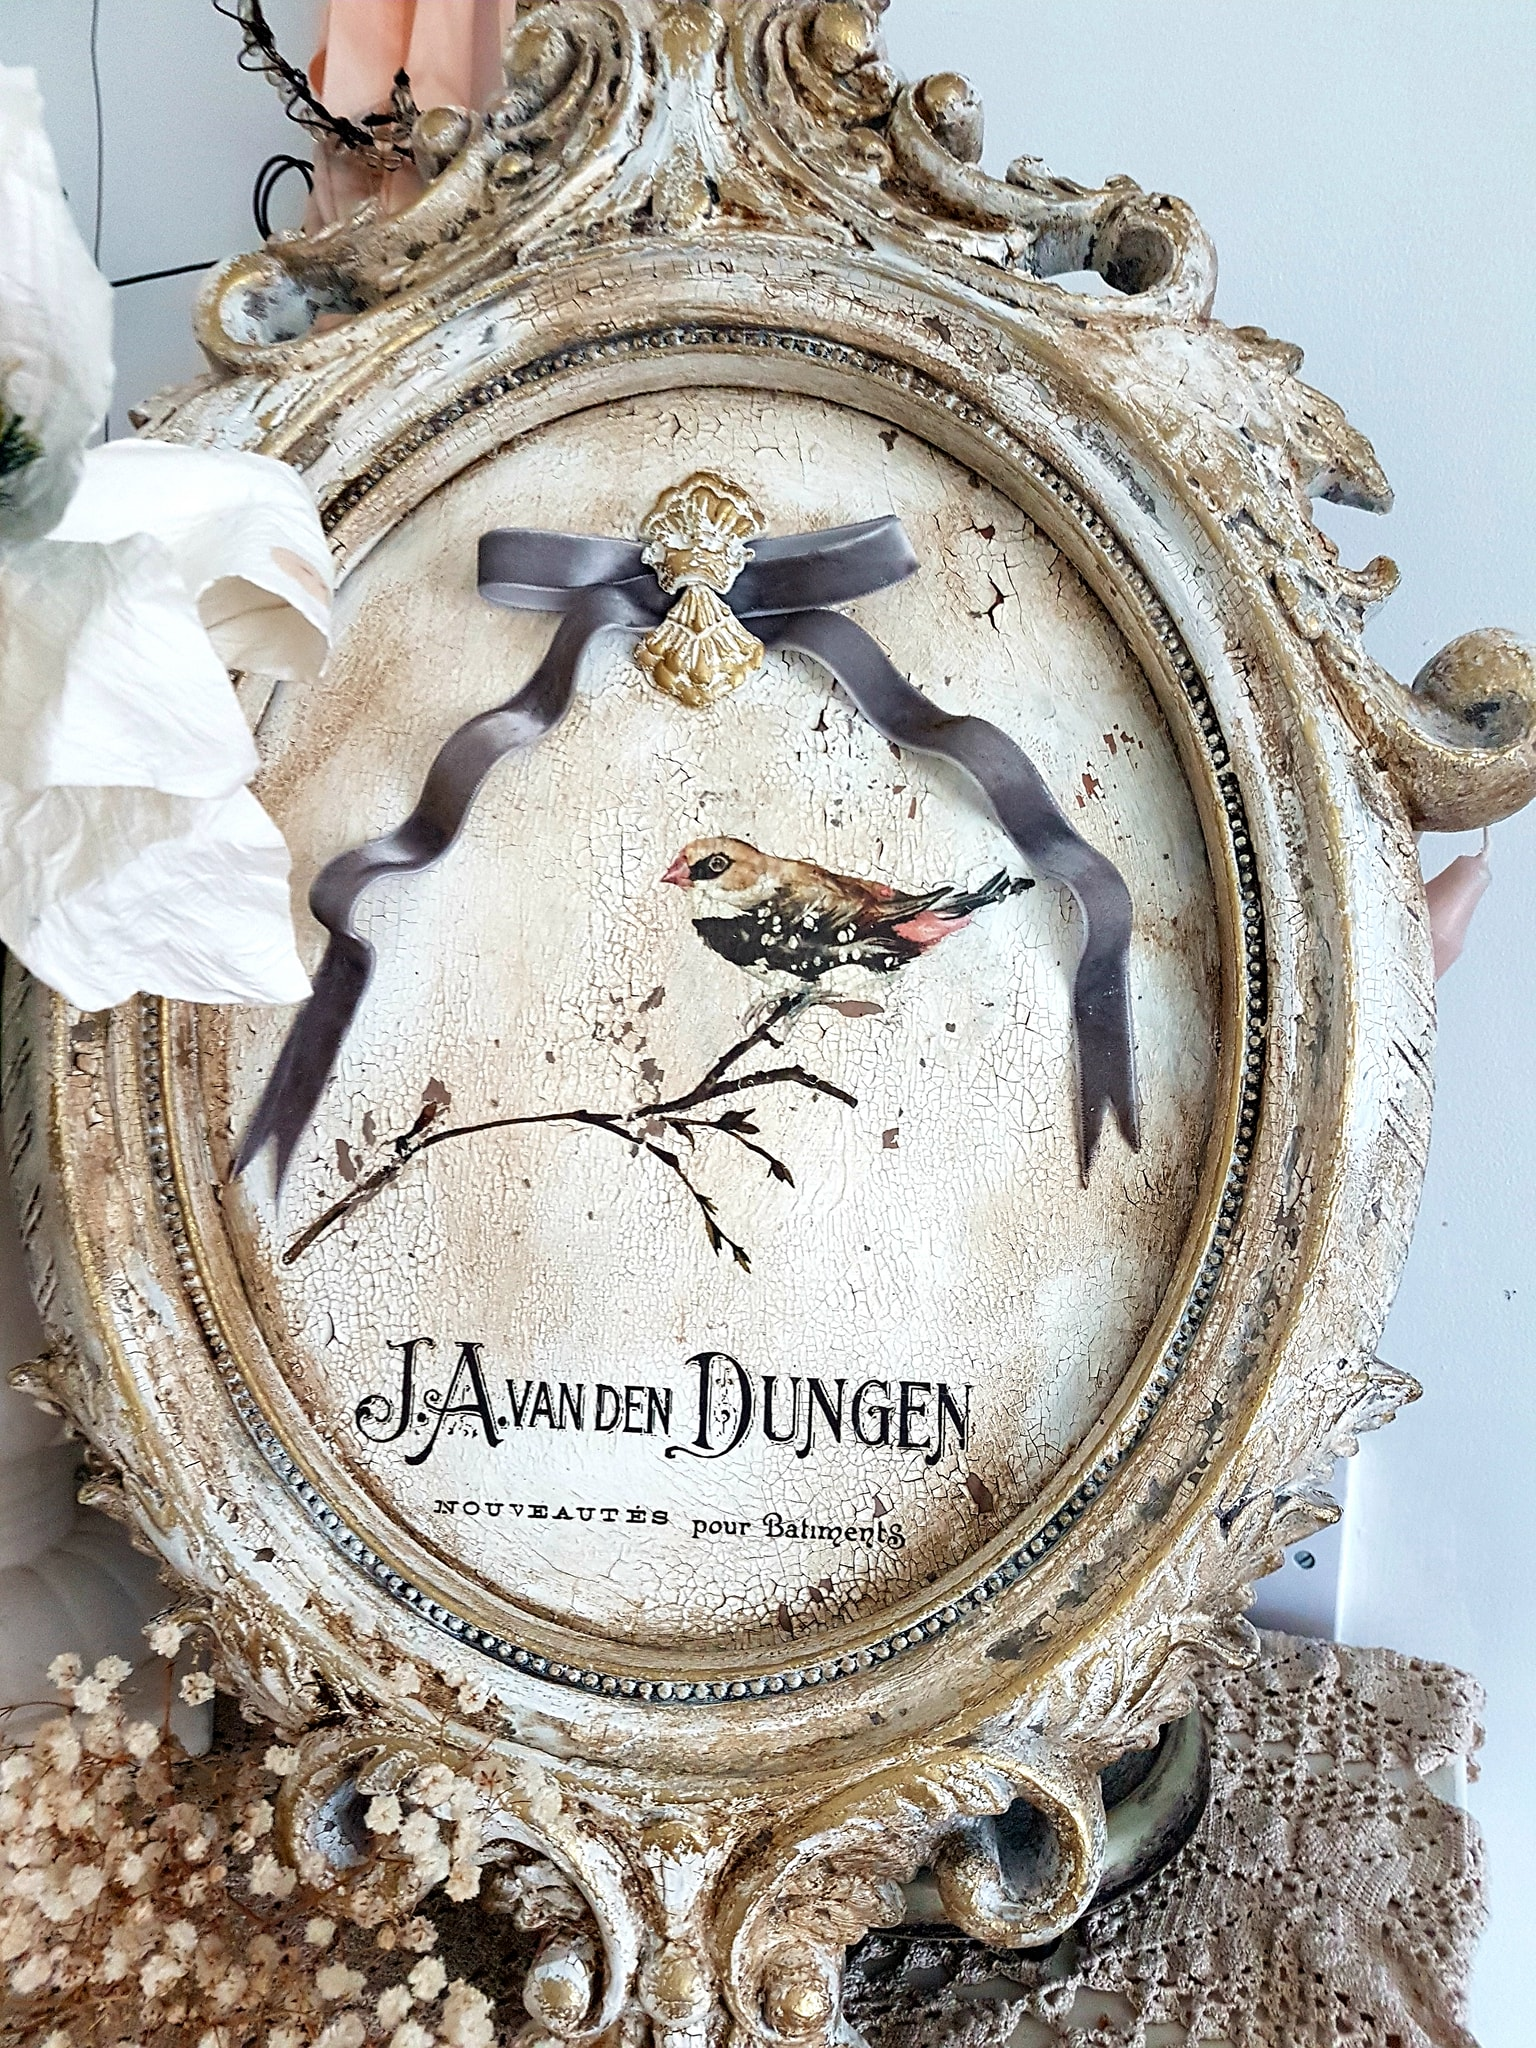 For this frame she applied crackle paste, white Chalk Paste®, Eternal Decor Wax and the Van Dyke Glaze. The chippy-ness is fantastic. You would never know this started off as a plastic frame from the dollar store.